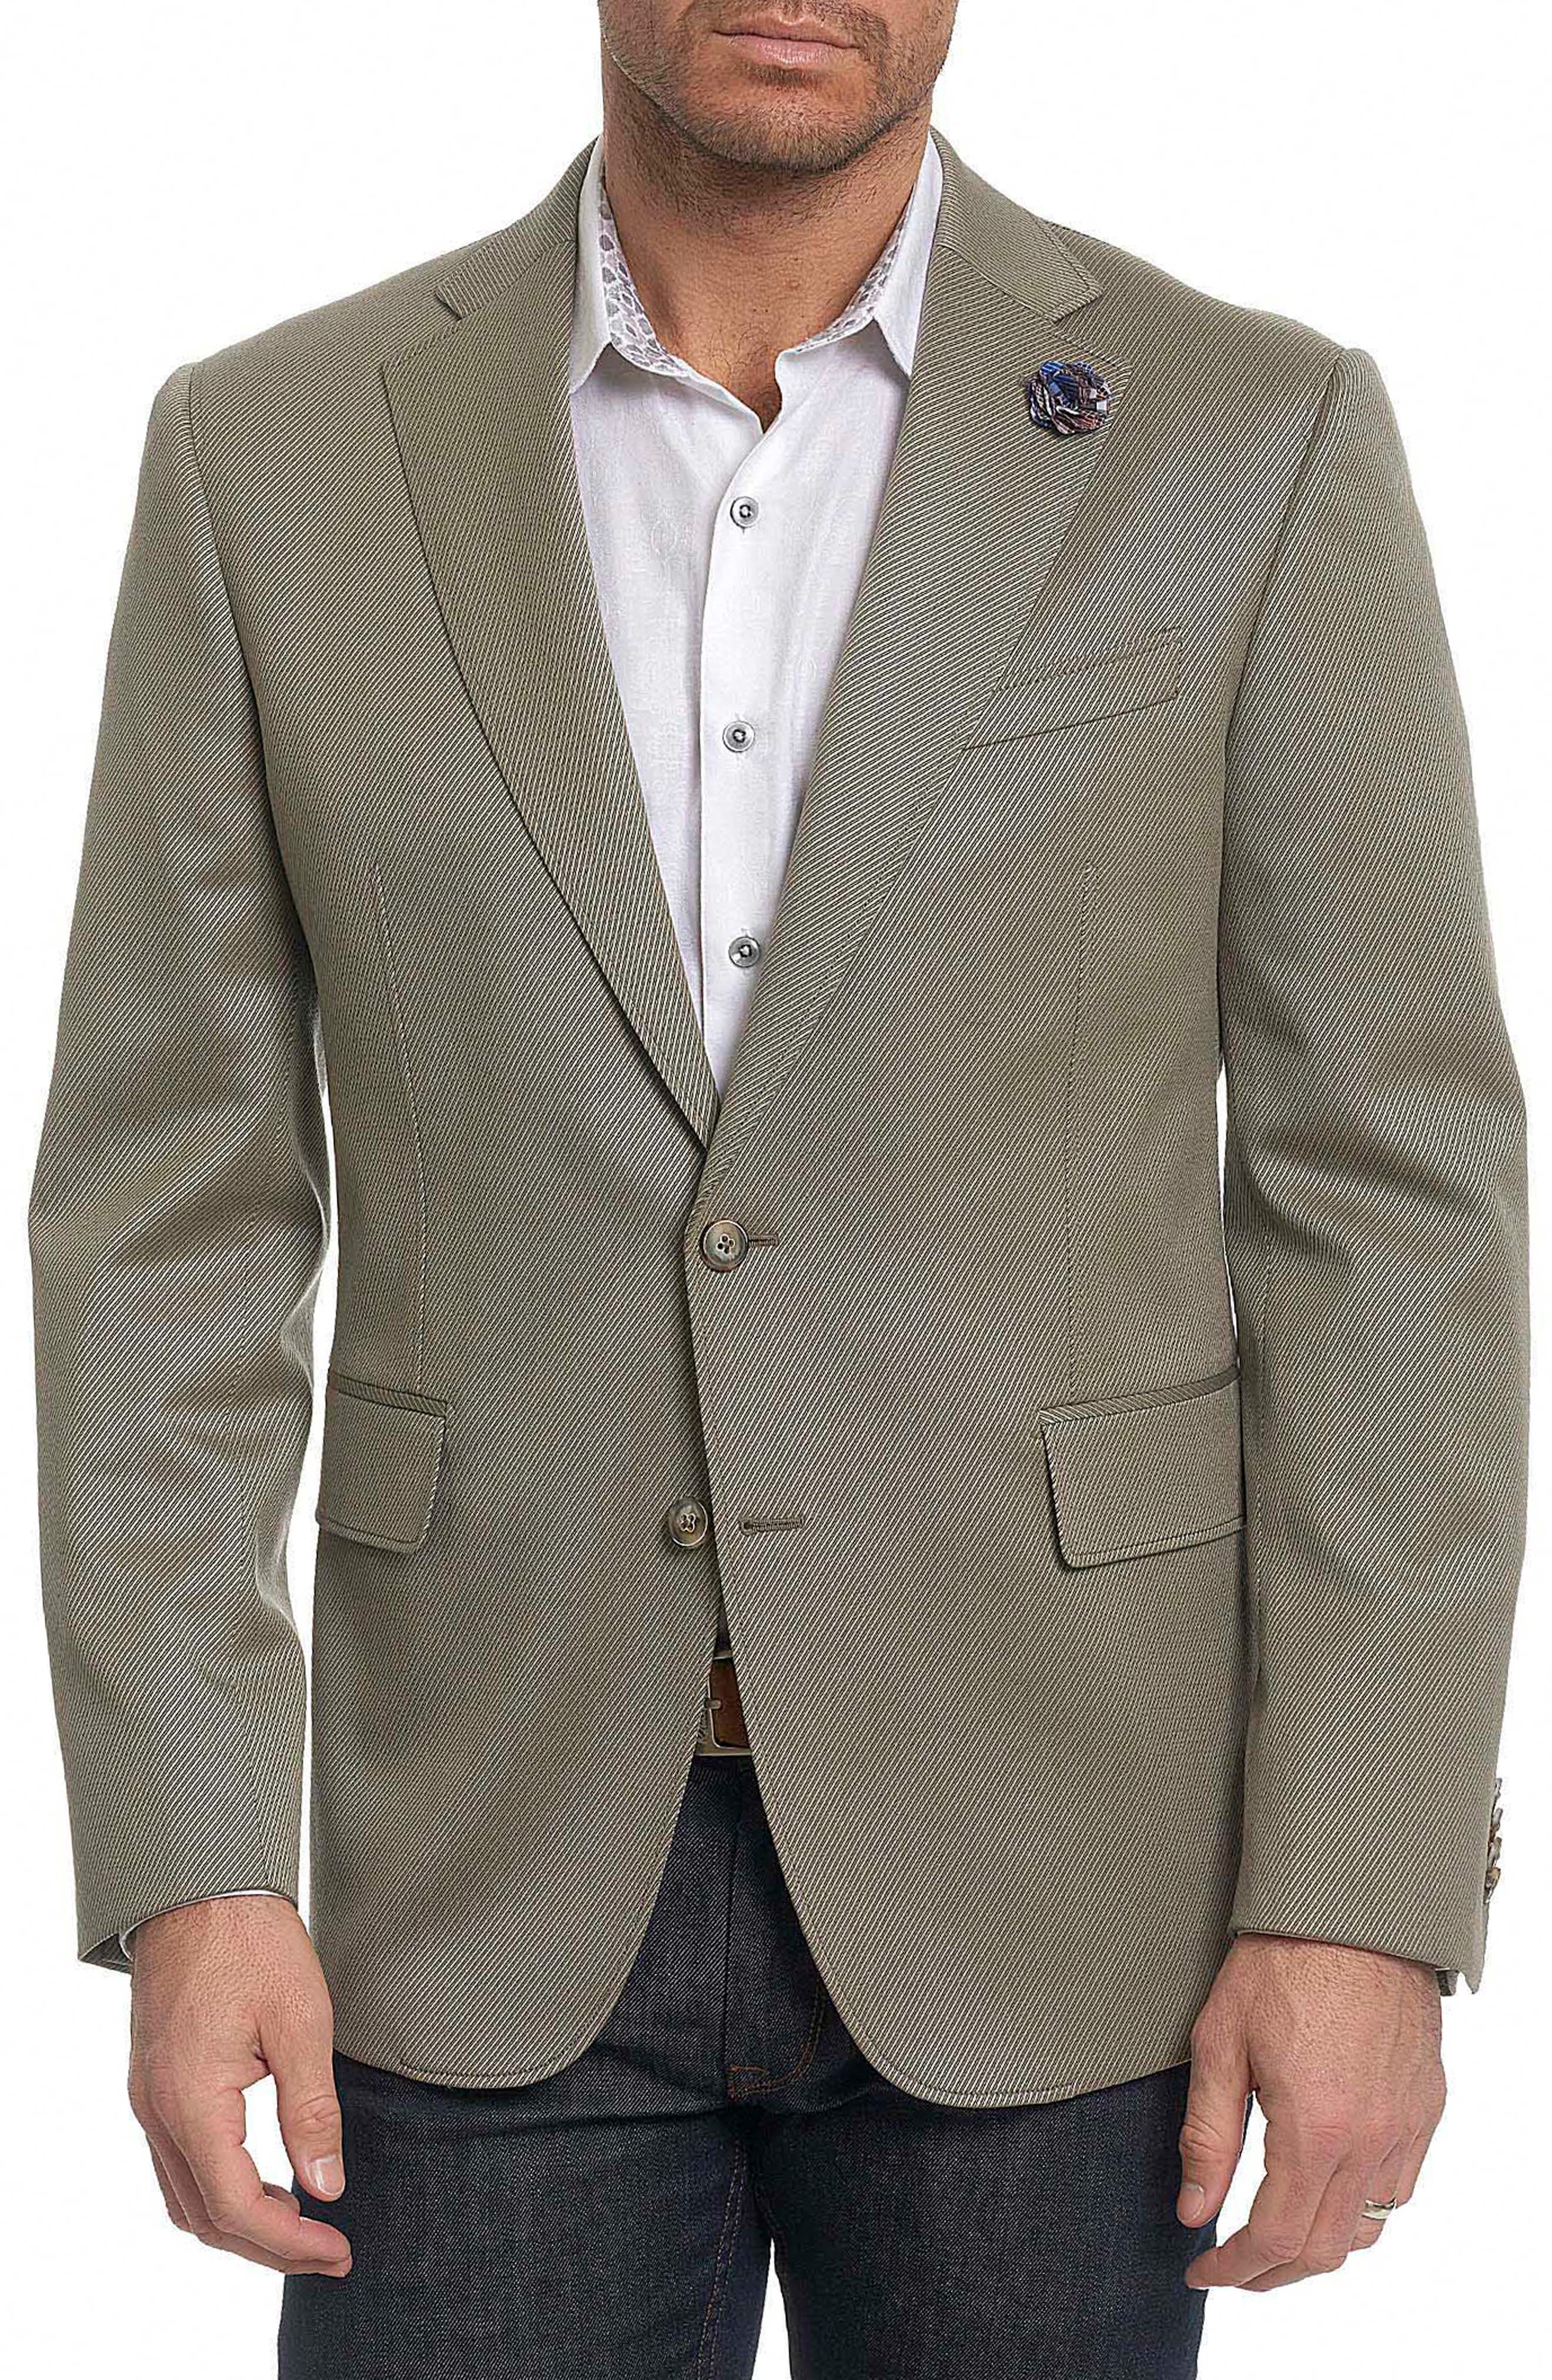 Castille Classic Fit Wool Blend Sport Coat,                         Main,                         color, Taupe